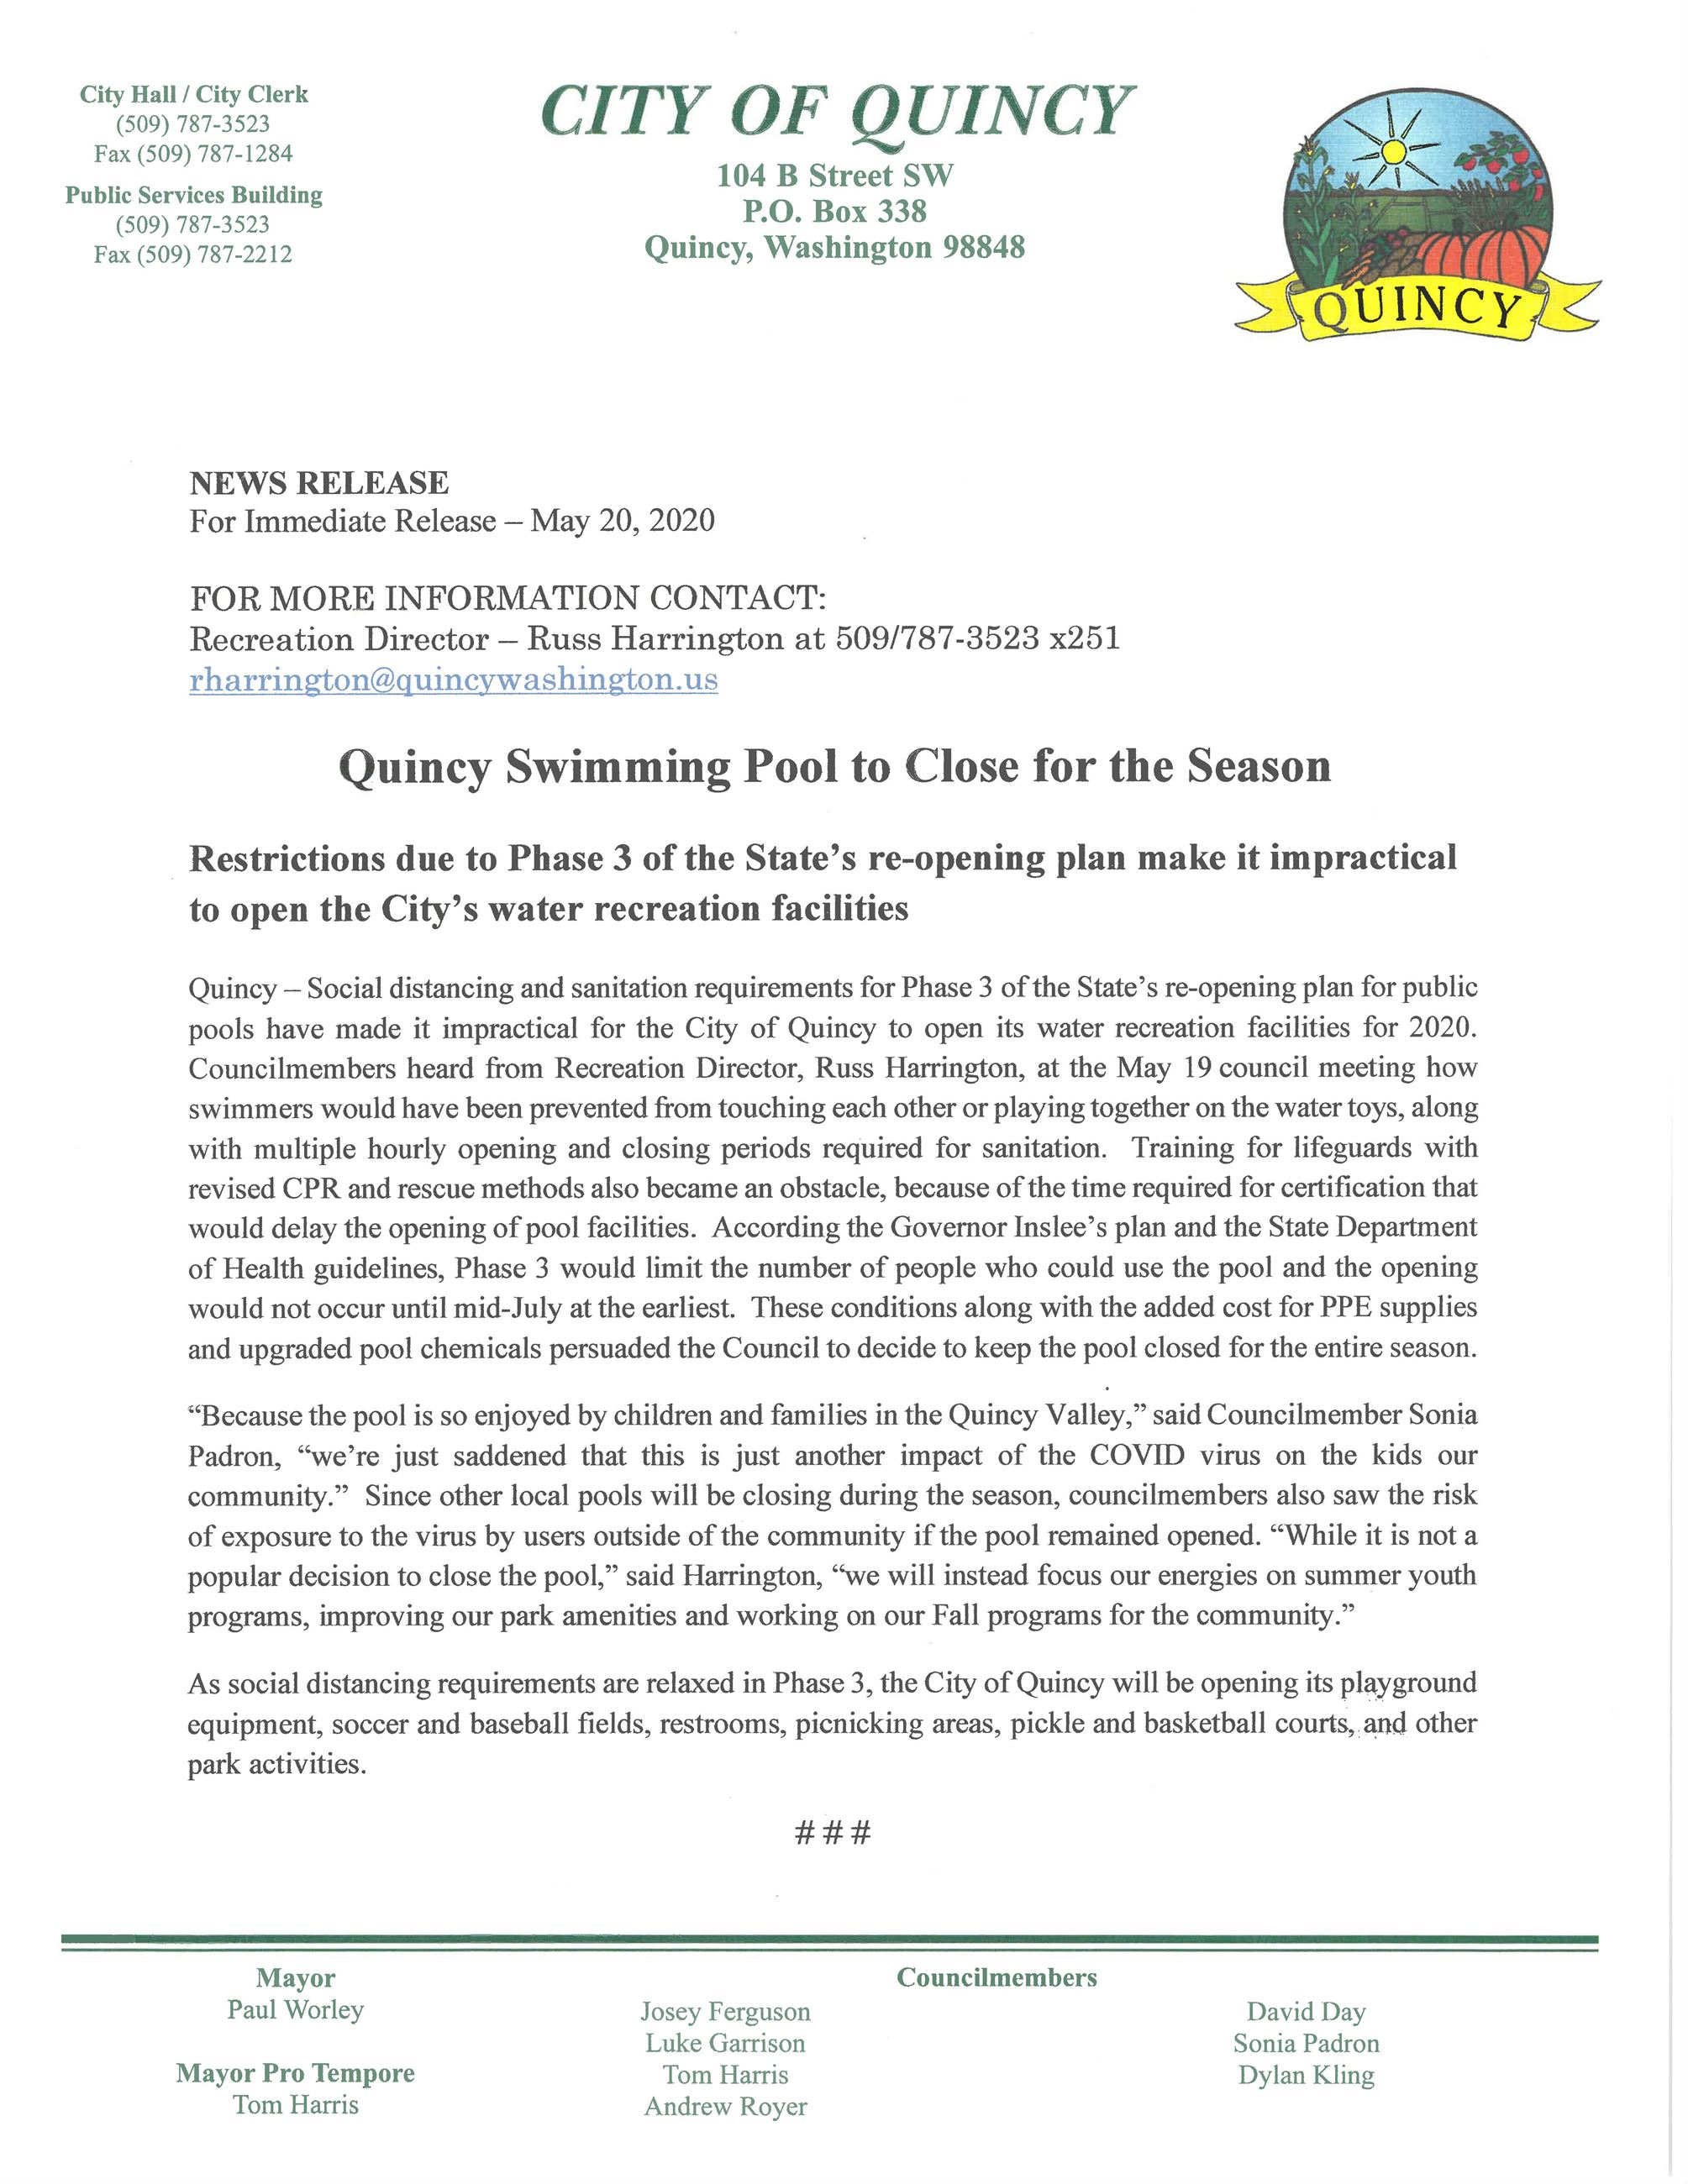 News release - Pool Closure Opens in new window